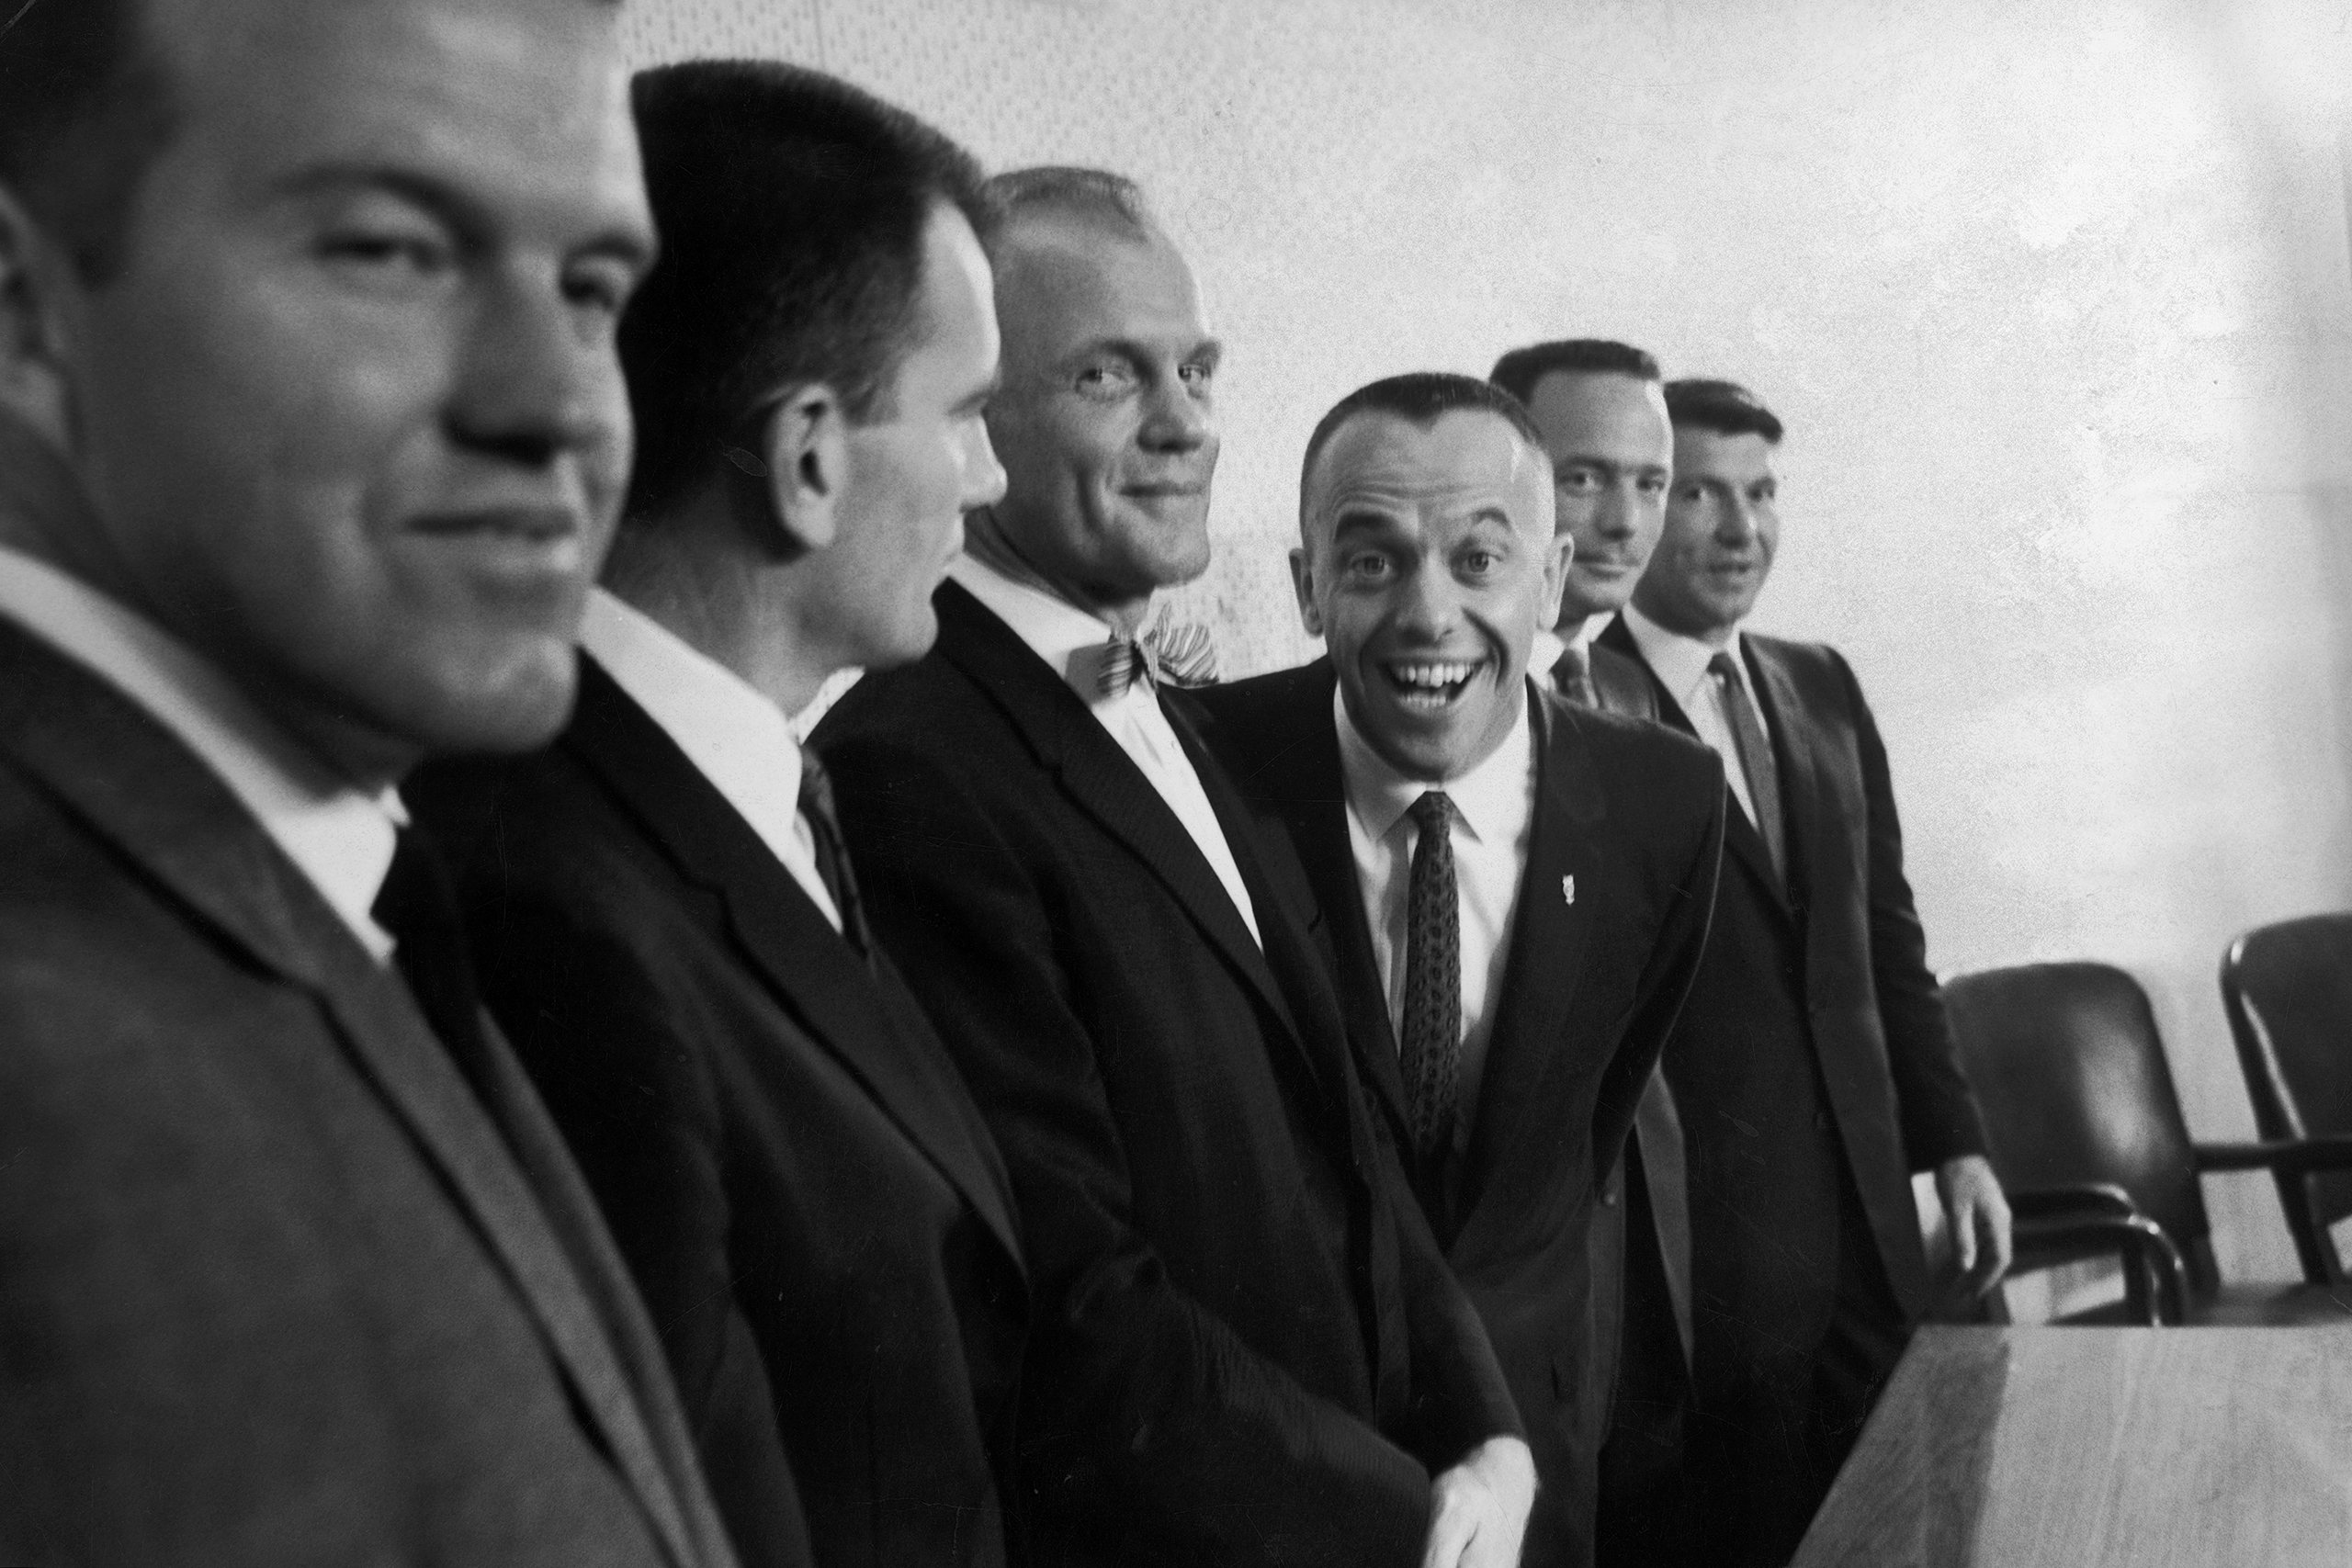 "<b>""Smilin' Al""</b> Astronaut Al Shepard alternated between being playful and frosty, earning him the alternating nicknames Smilin' Al and the Ice Commander. Here, in 1961, he shows his goofier side as Glenn, controlled as always, betrays a bemused smile."